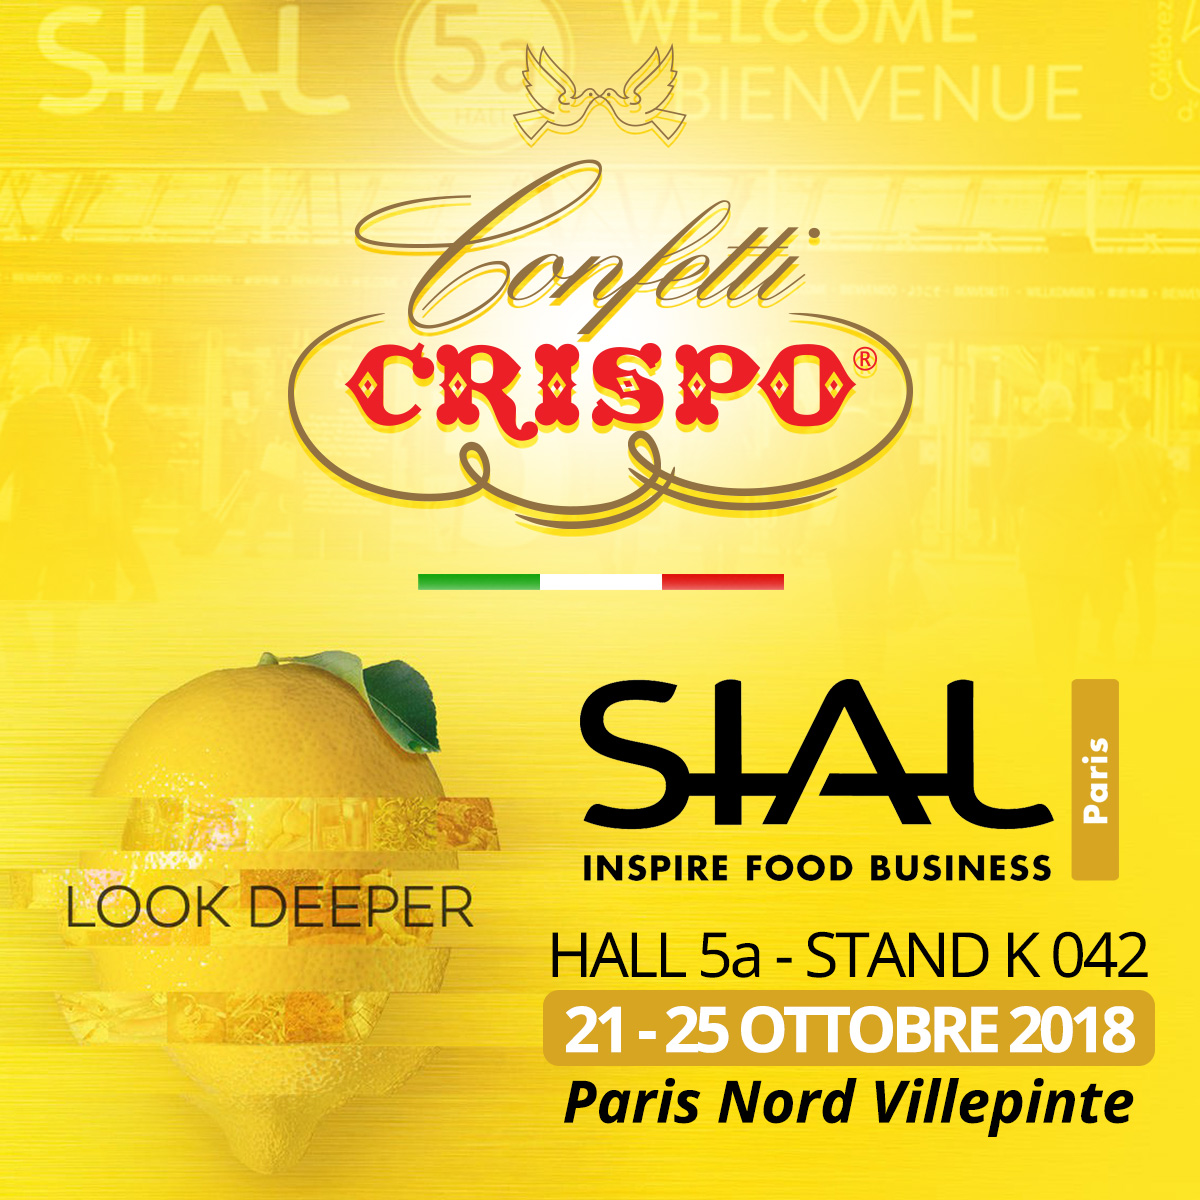 Confetti Crispo at SIAL Paris